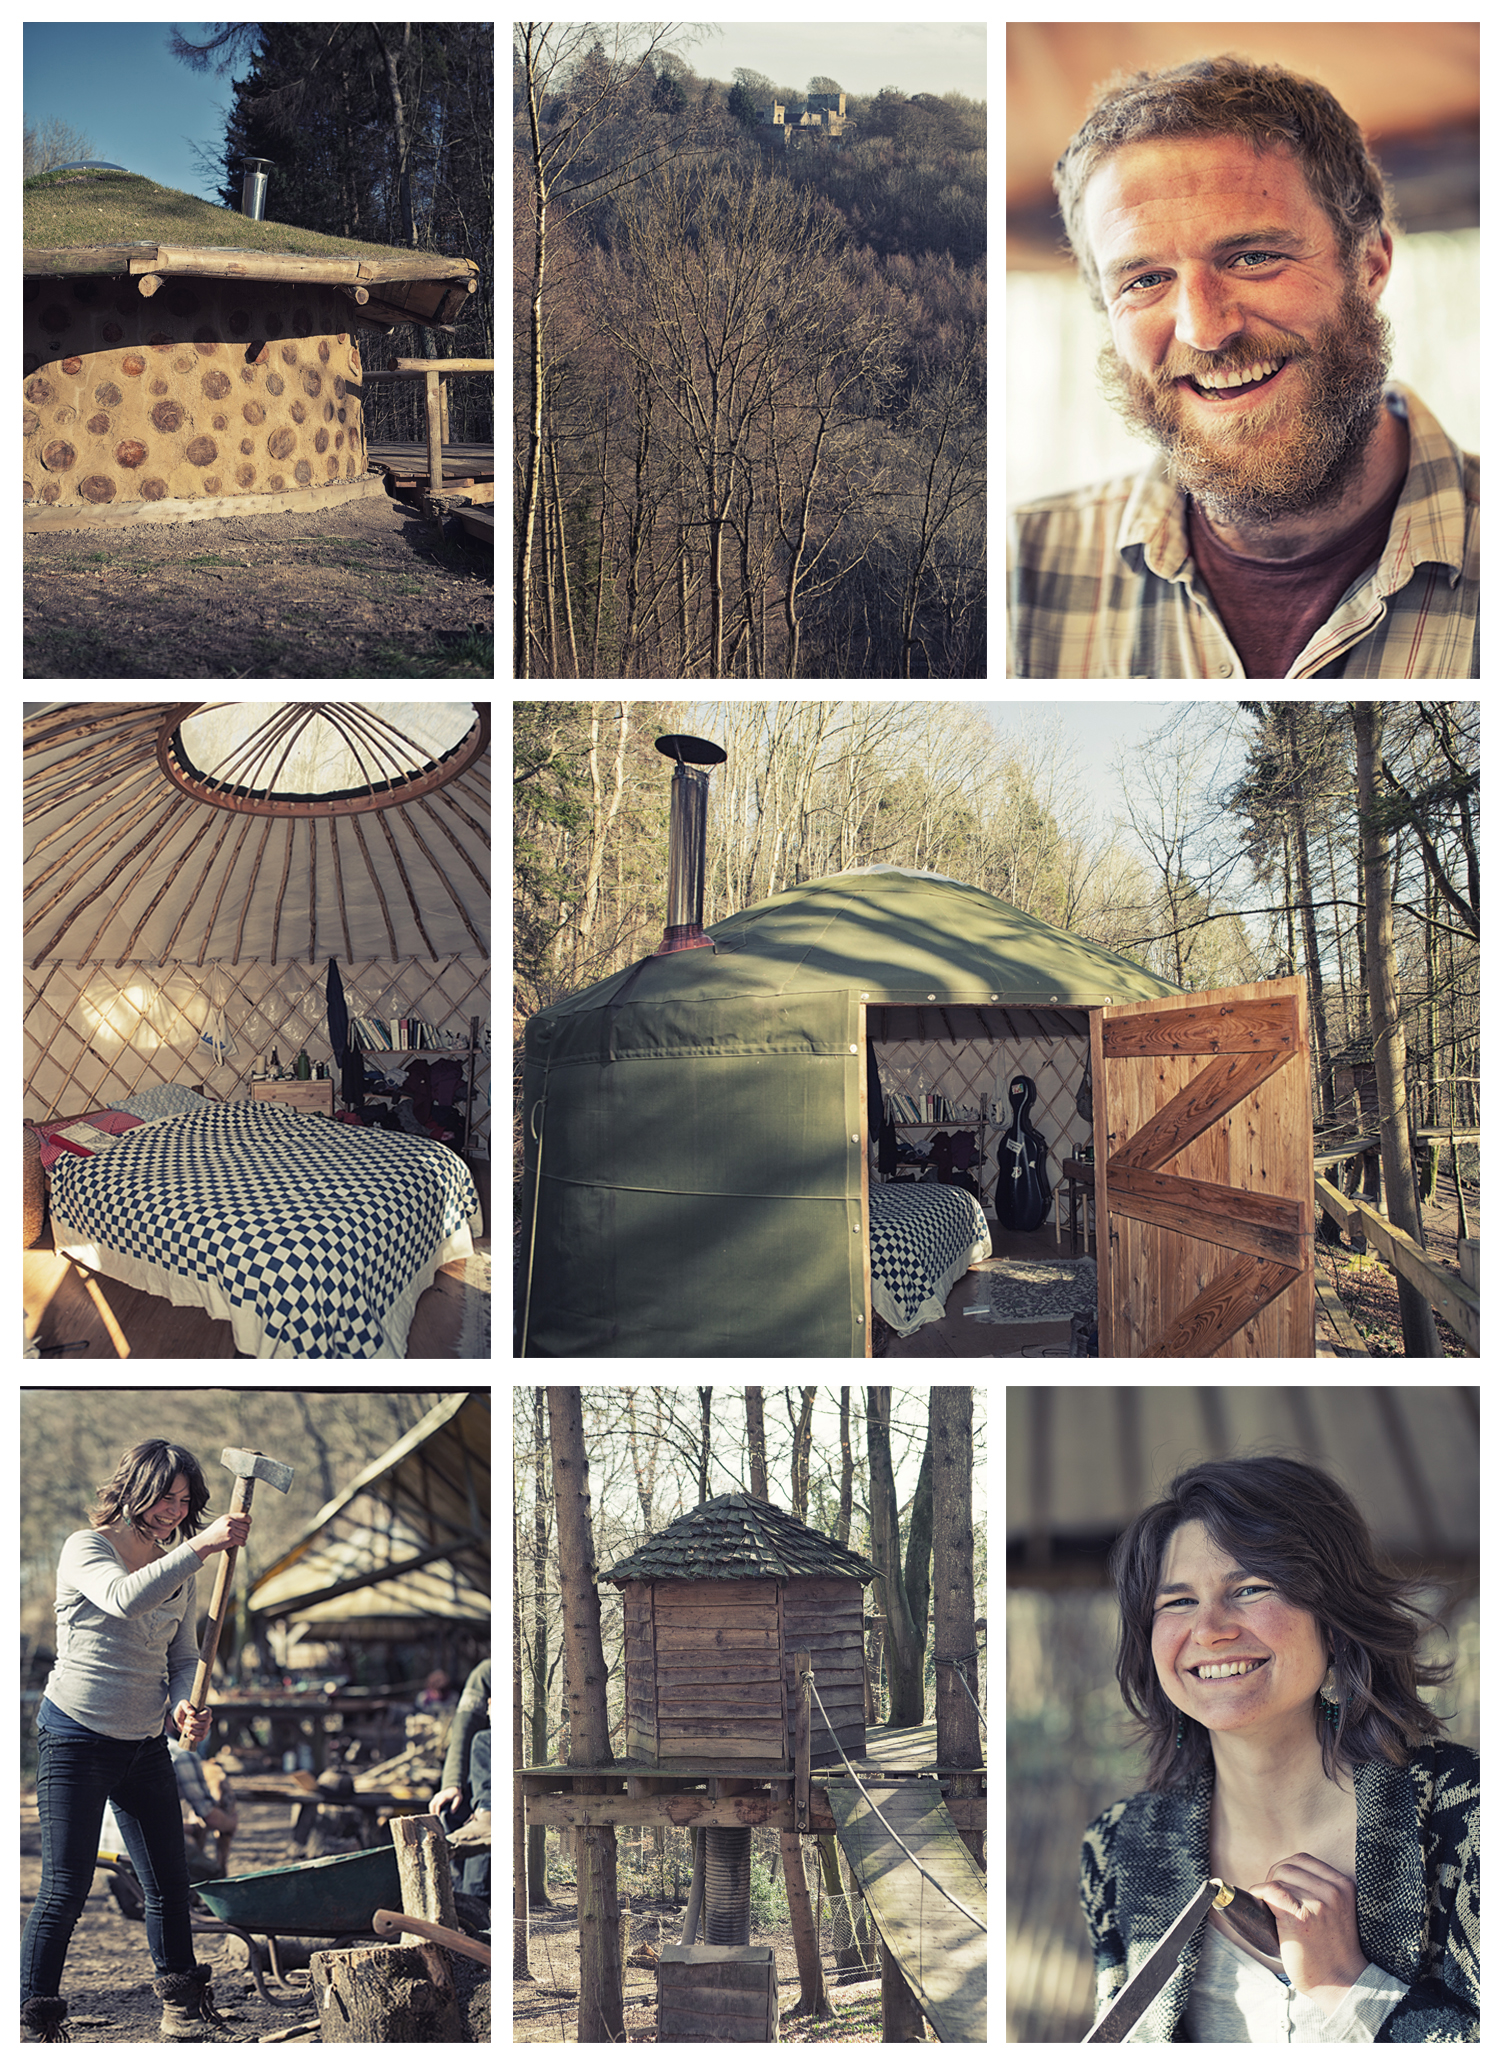 Apprentices stay on site in the hand-built yurts and learn woodland management skills. Top left is a house made of cob with a grass roof, and middle bottom is the toilet